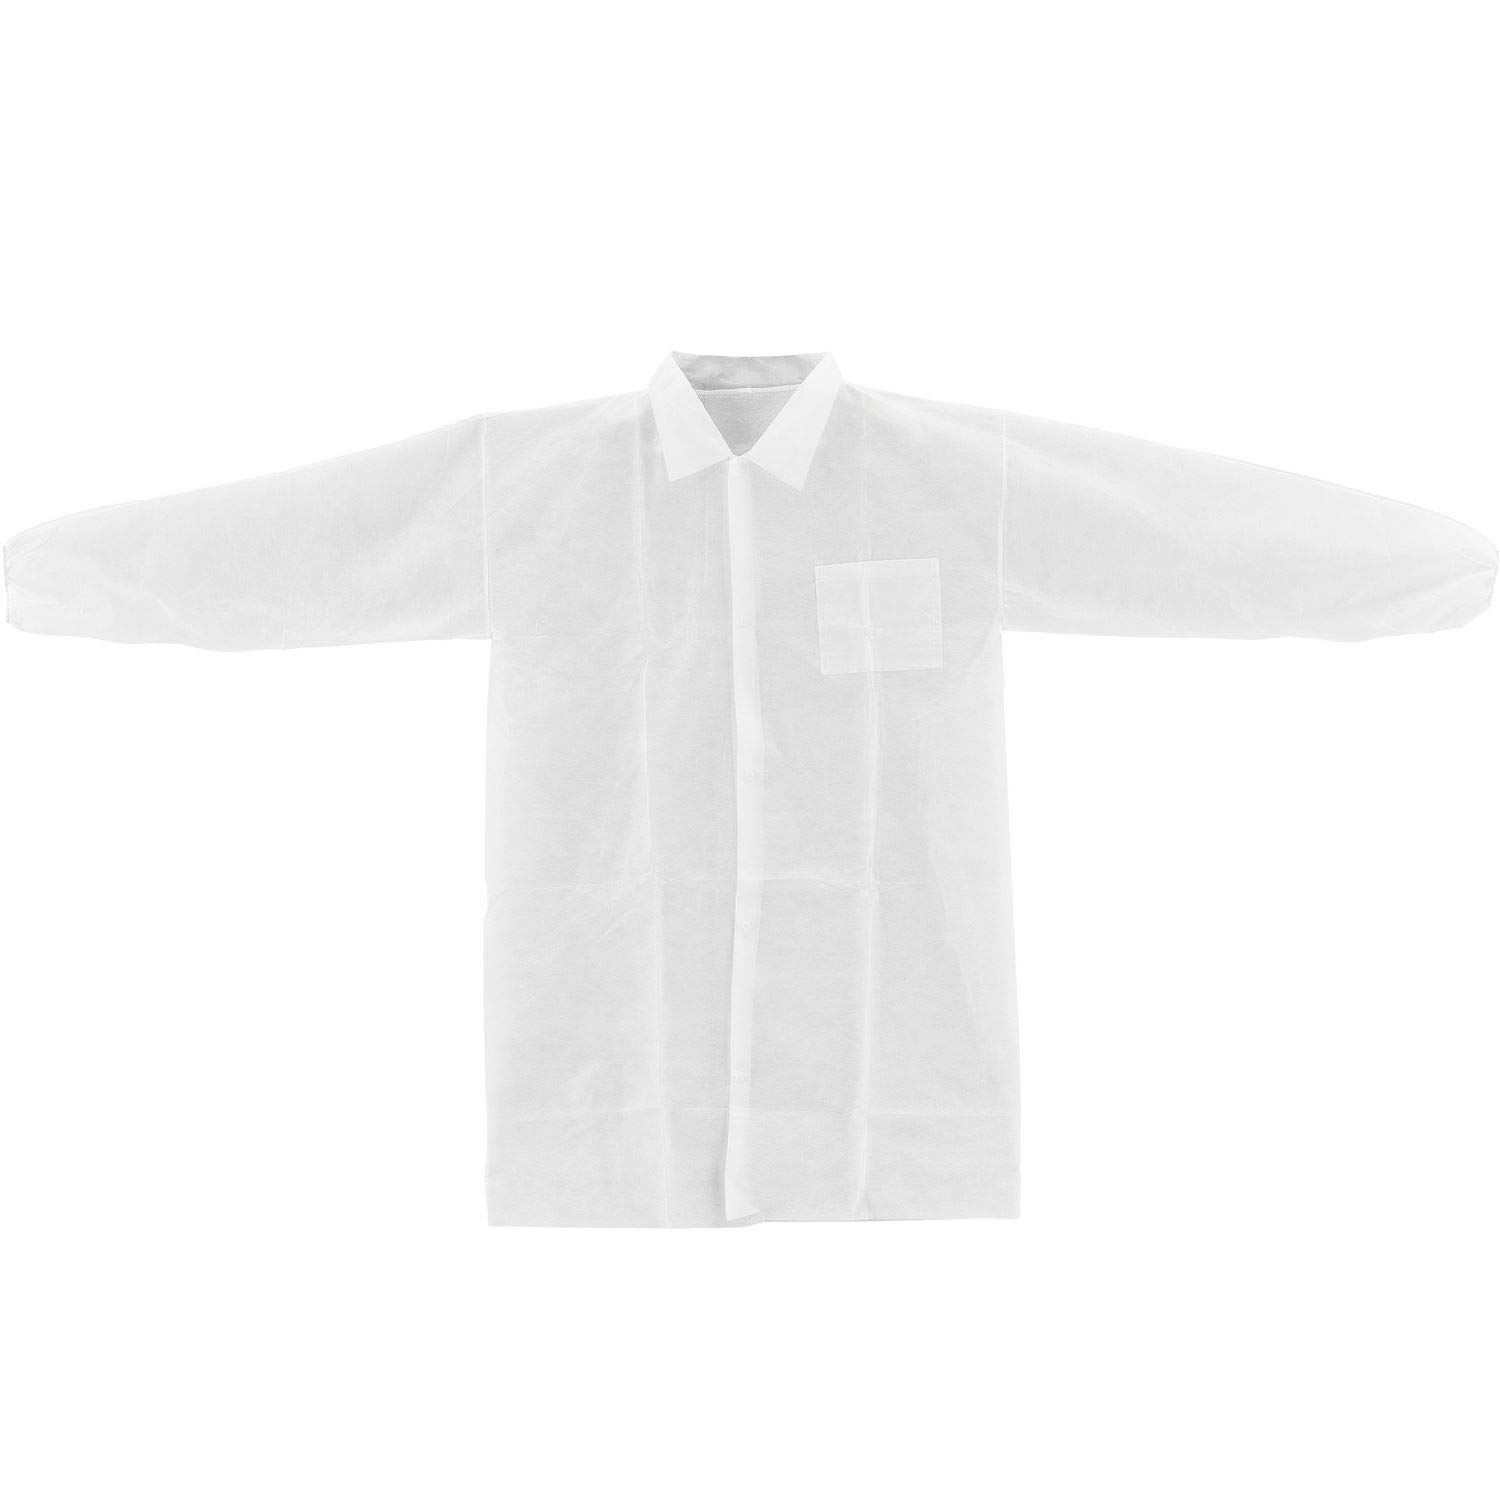 White Disposable Polypropylene Lab Coat - 1 Pocket, Elastic Wrists, Collar, Snap Closure, 39'' x 28'', 2X-Large, Pack of 25 by One Stop Shop